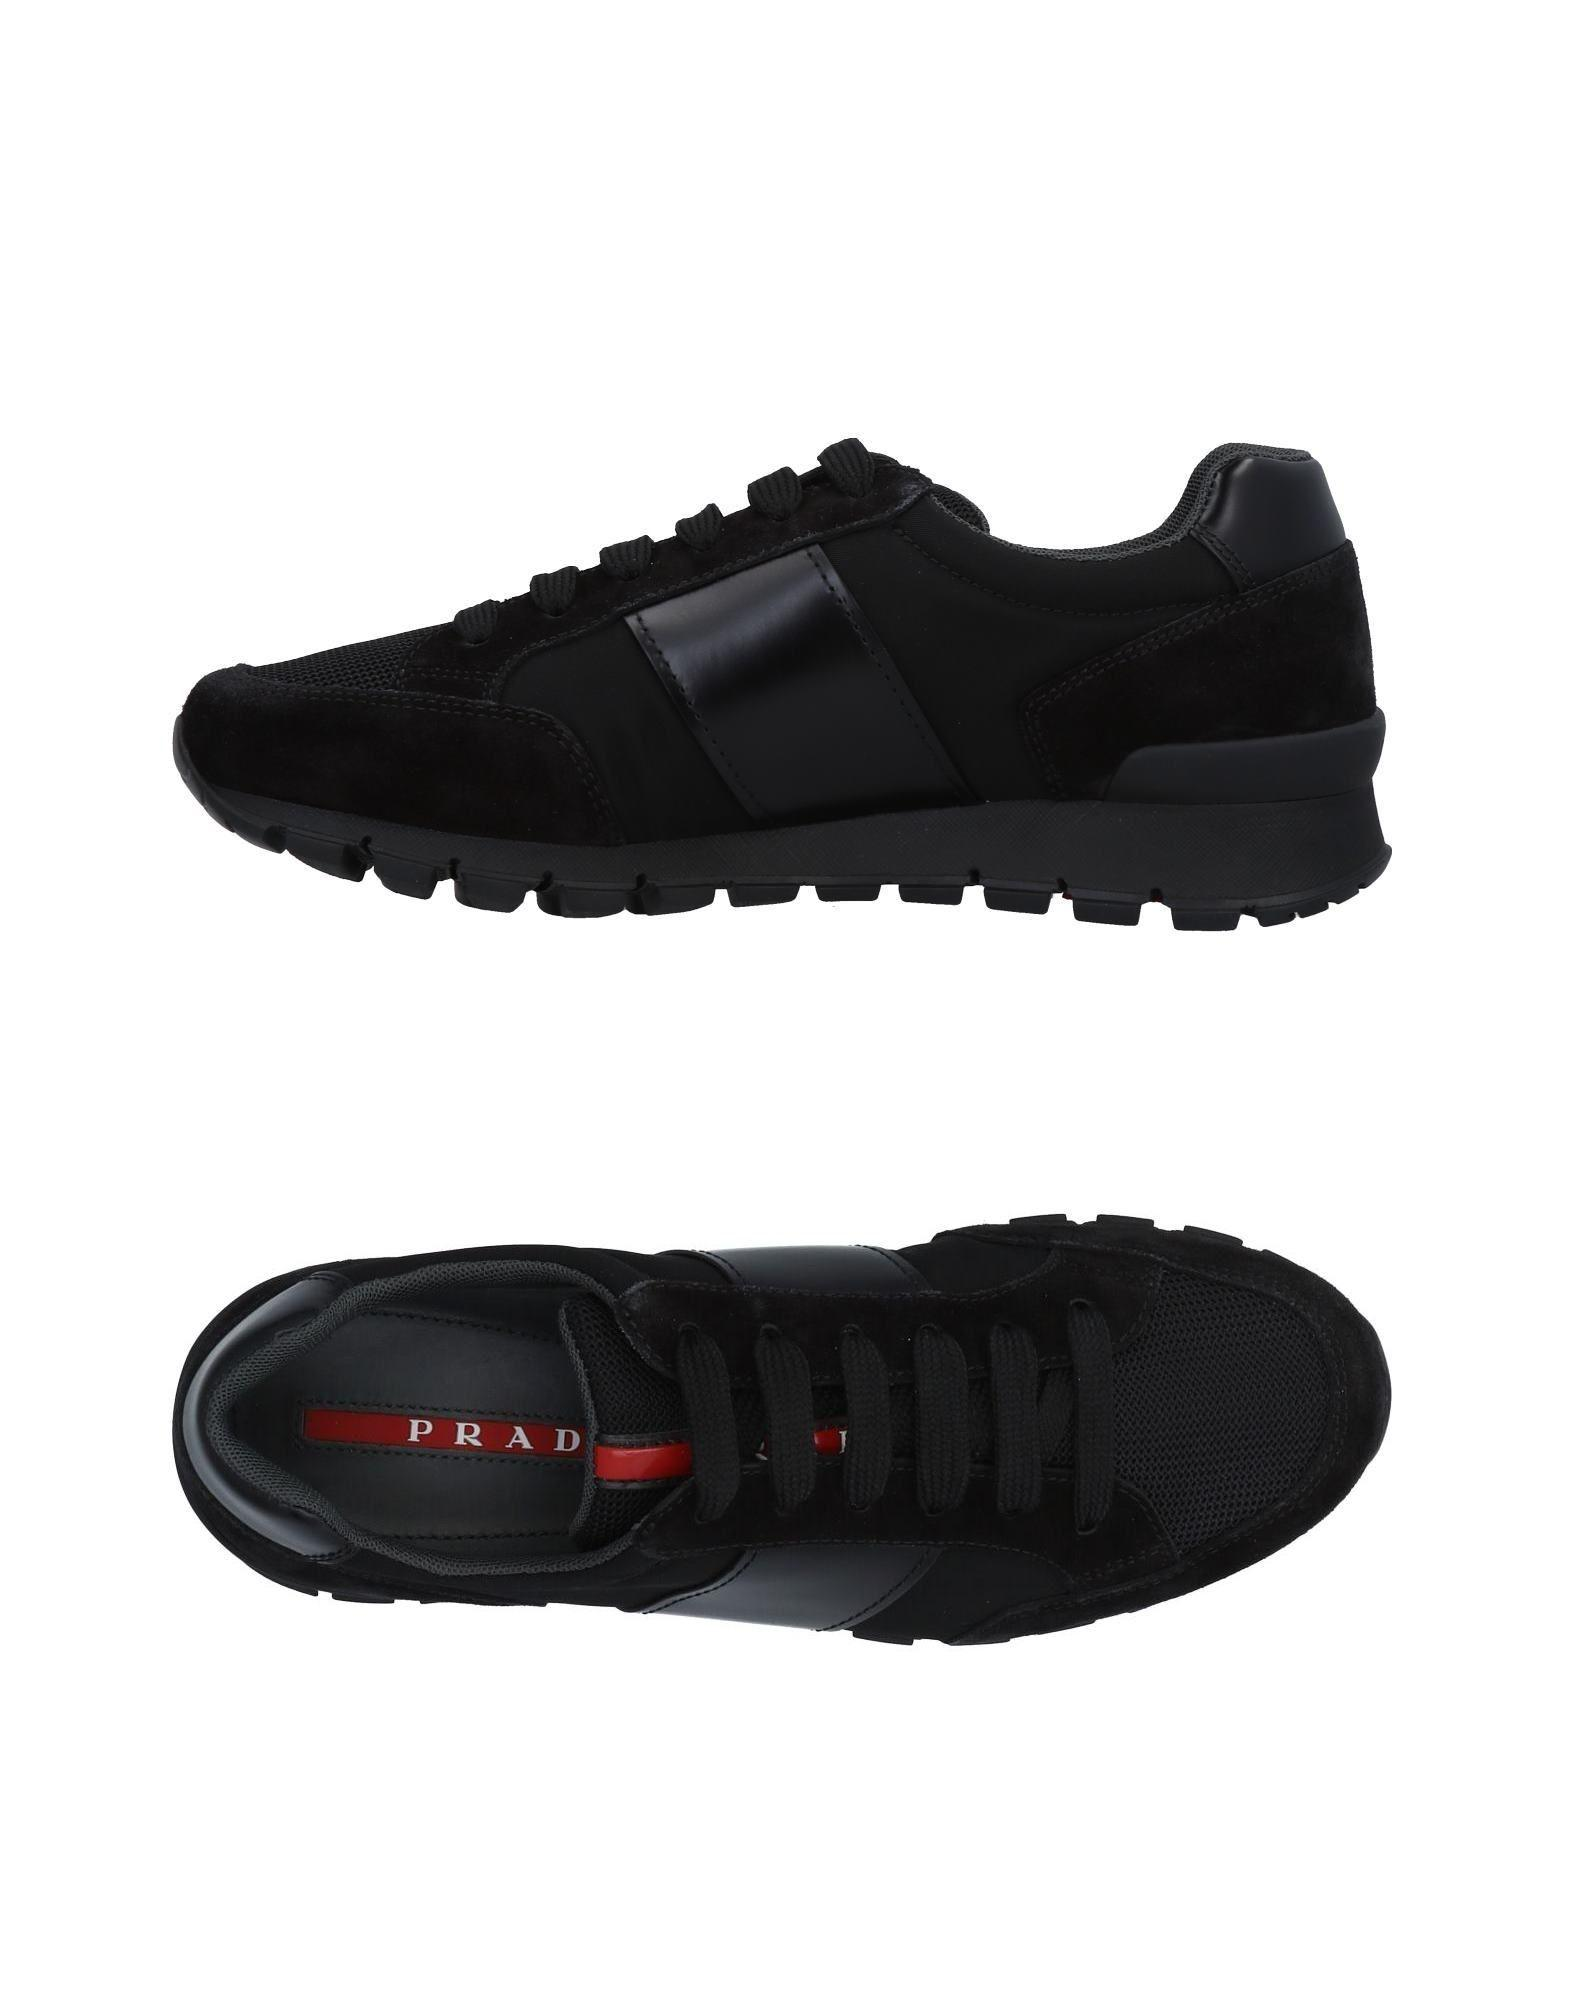 Prada Sport Low-Top Logo Sneakers from china free shipping low price Cheapest discount newest sale 2014 unisex 1JeOl